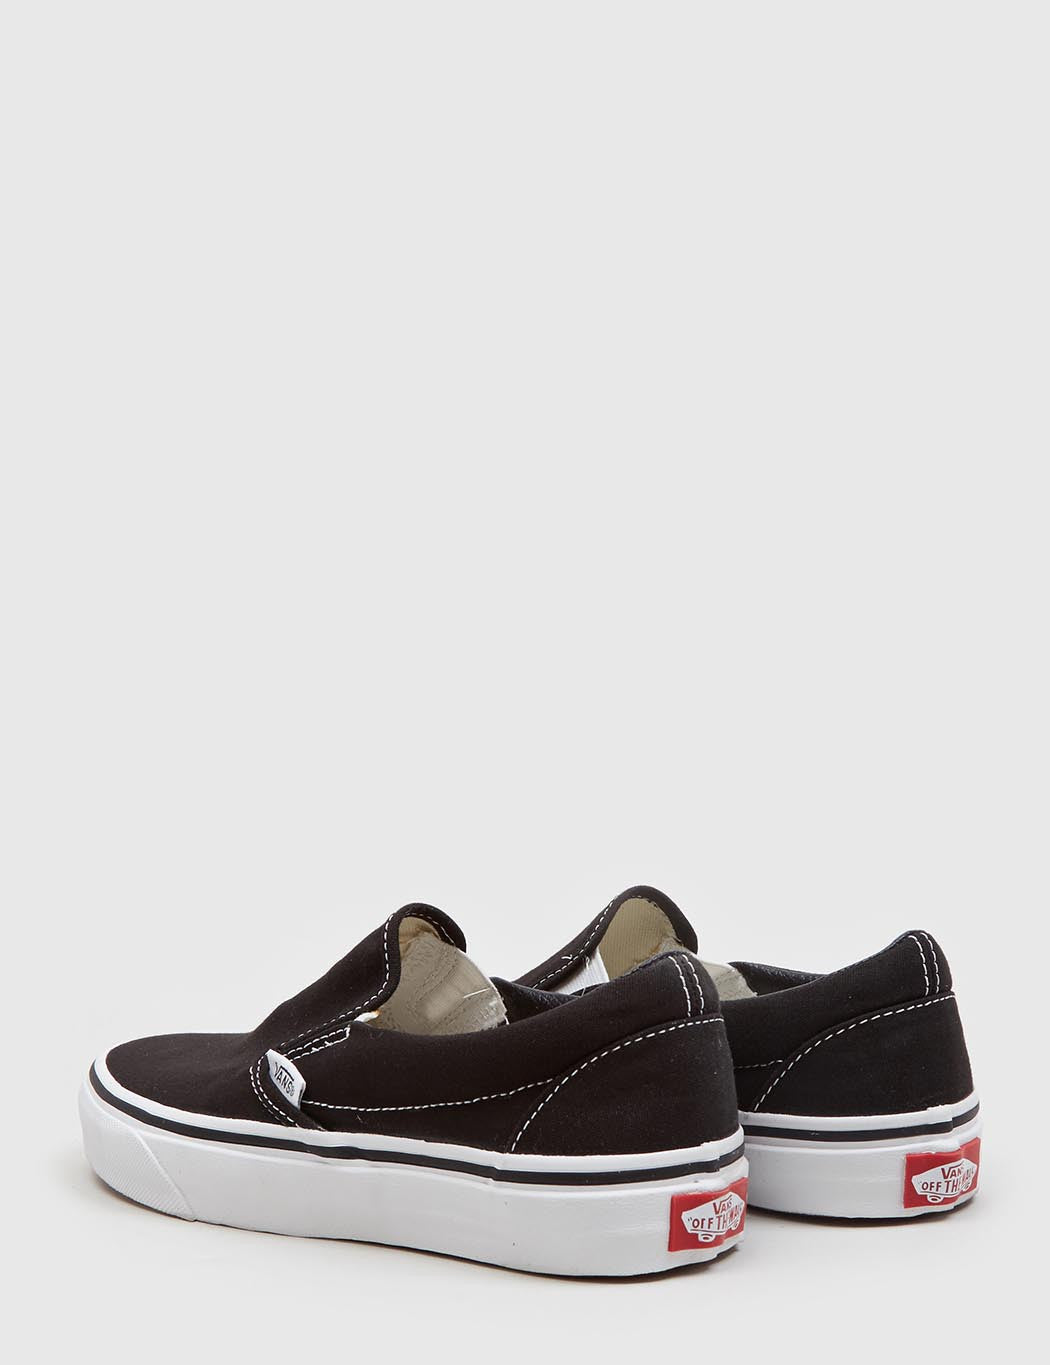 Vans Classic Slip-On (Canvas) - Black